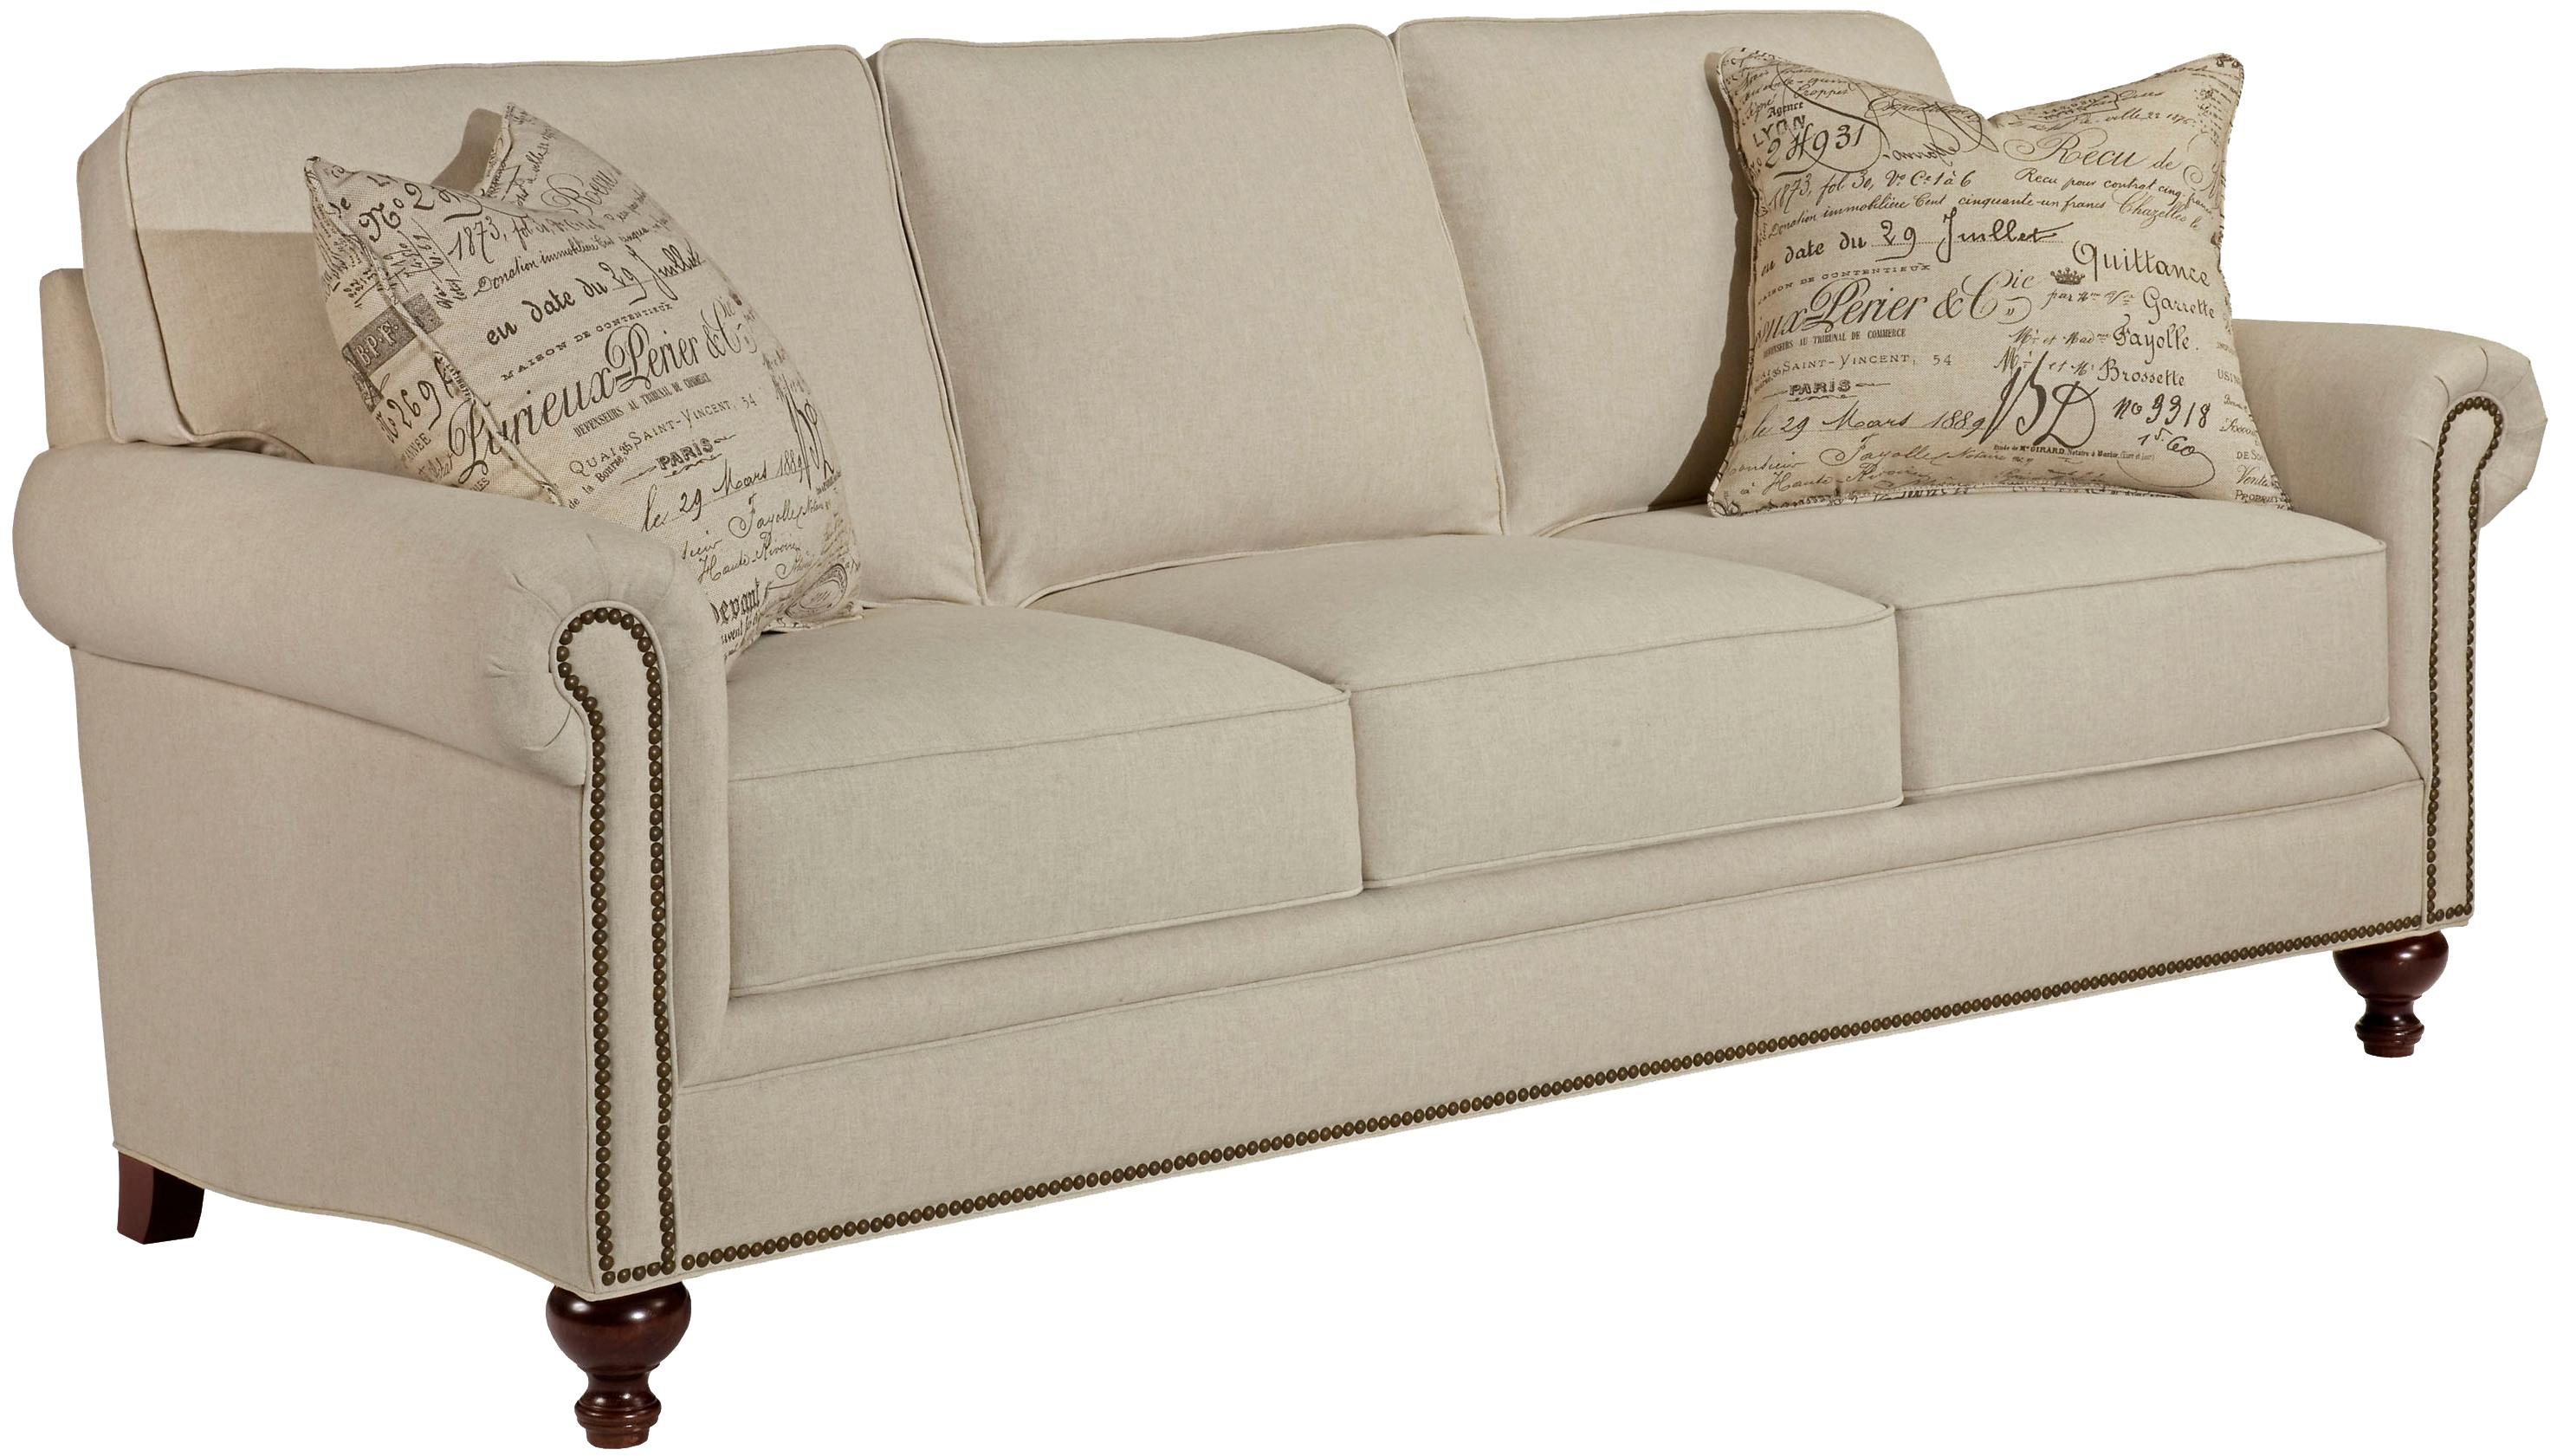 Broyhill Furniture Harrison Sofa  - Item Number: 6751-3